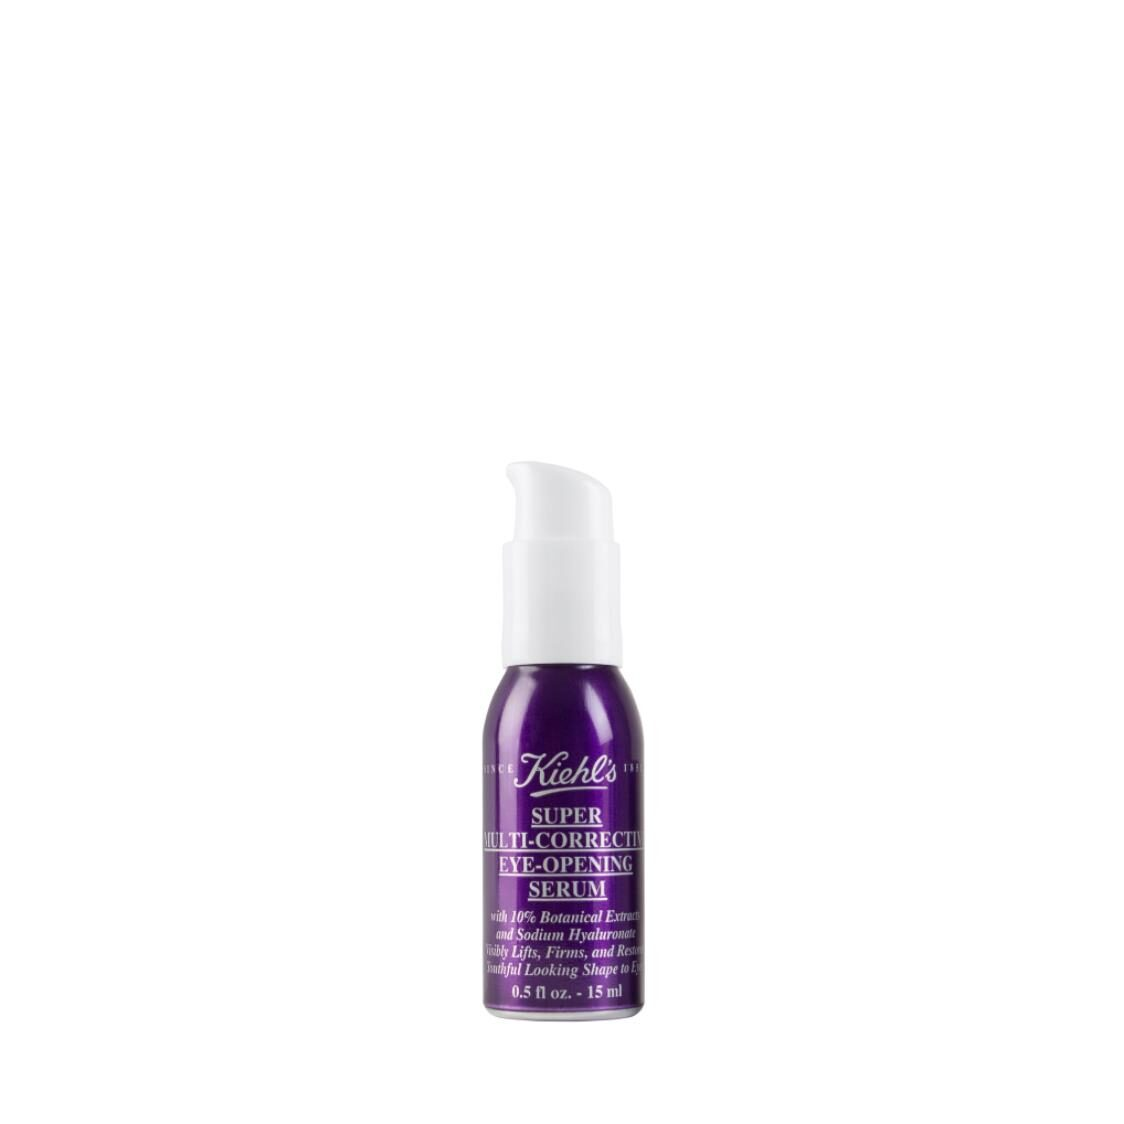 Super Multi-Corrective Eye Opening Serum 15ml